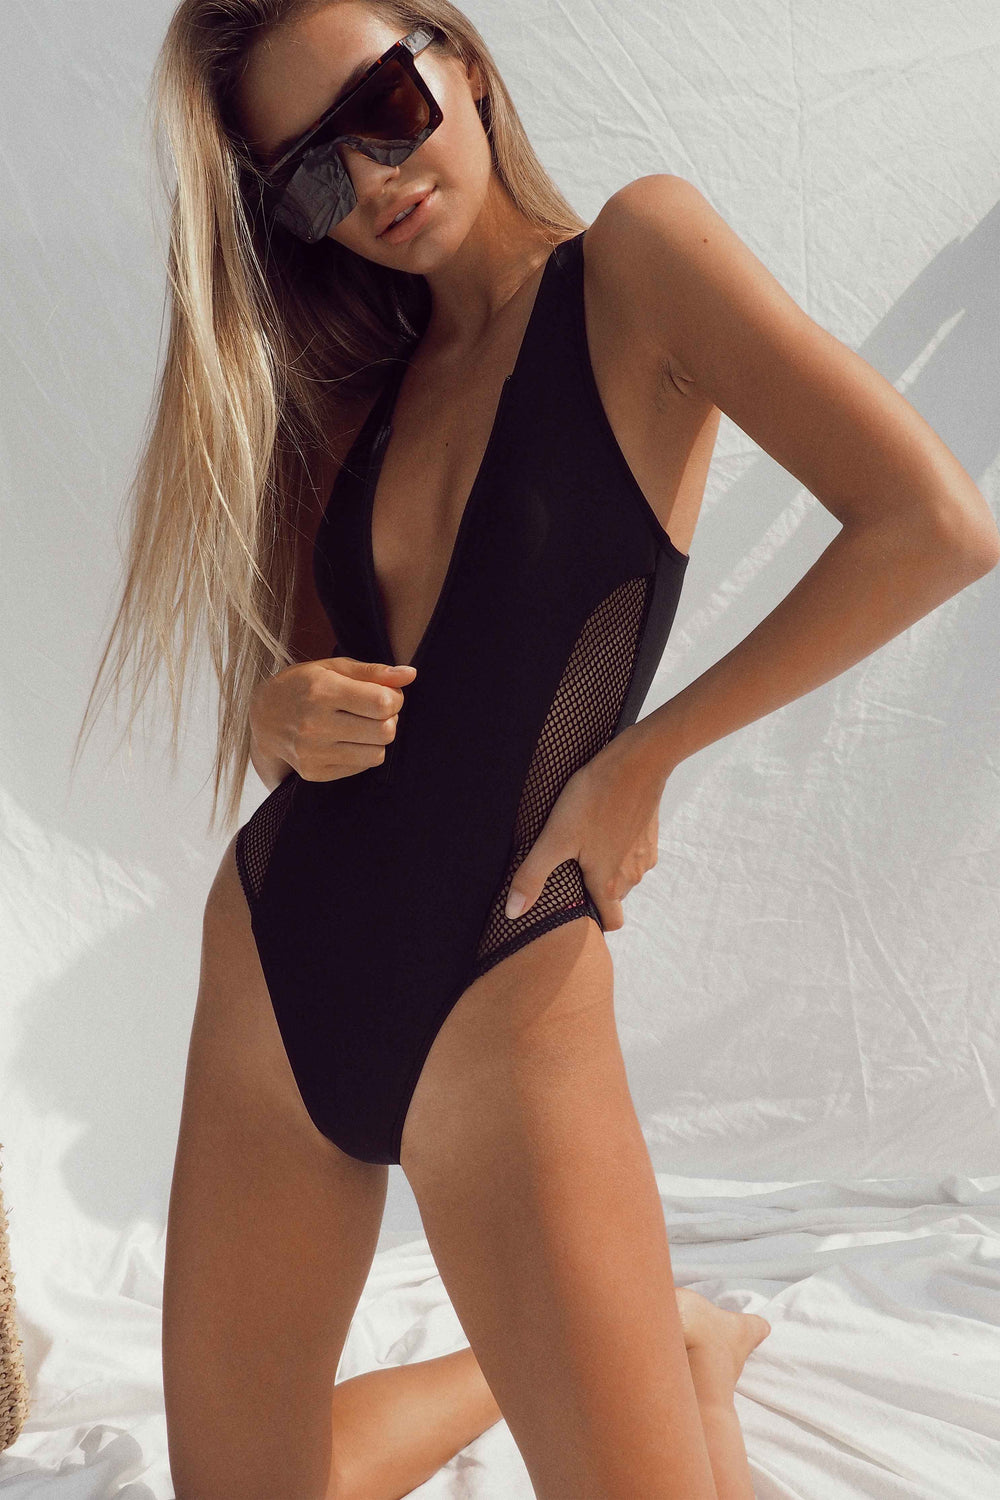 DARA SWIMSUIT - Chic Le Frique